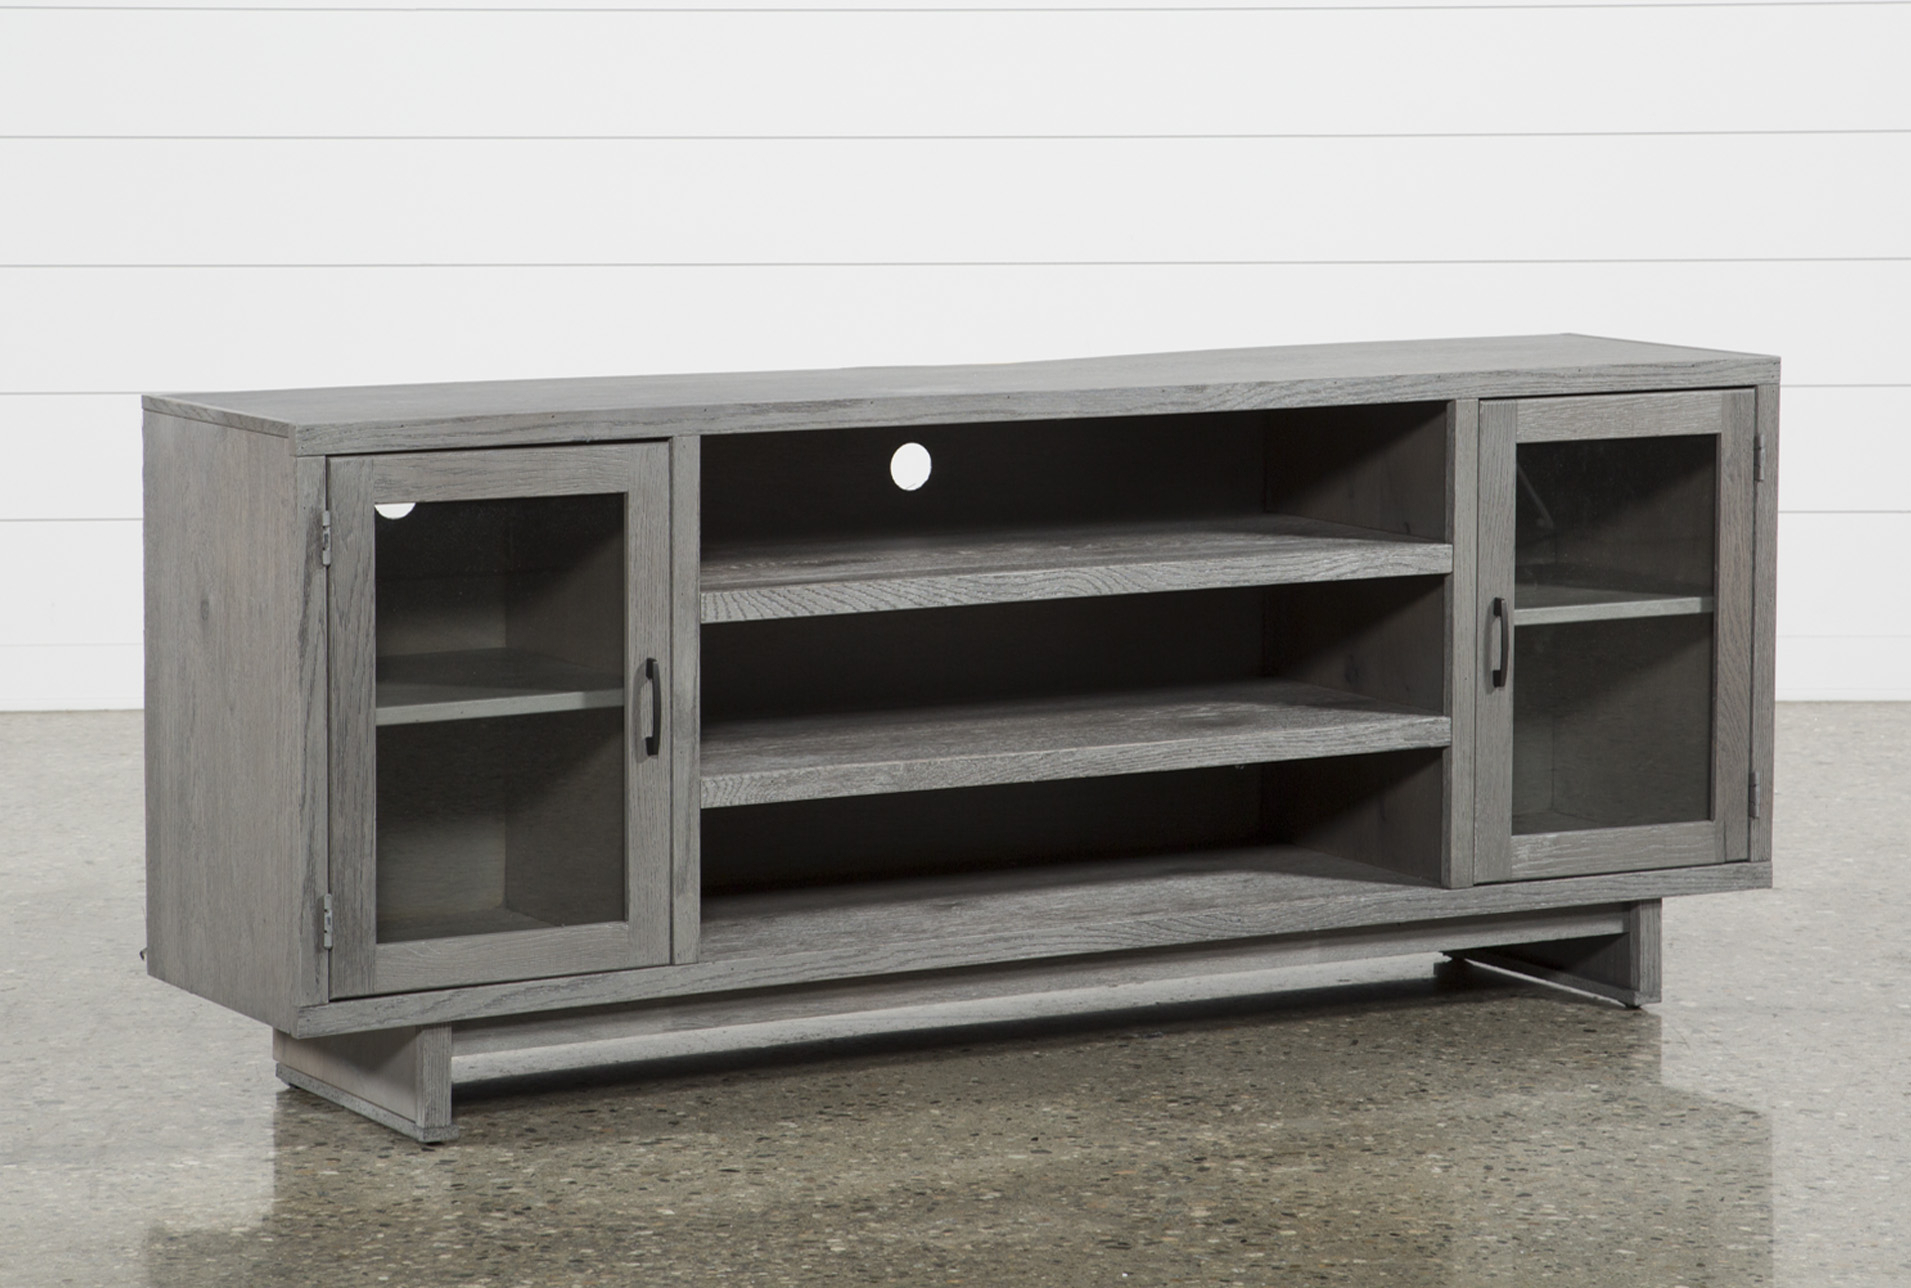 Melrose Titanium 74 Inch Tv Stand, Grey | House | Pinterest Inside Sinclair Grey 74 Inch Tv Stands (View 16 of 30)